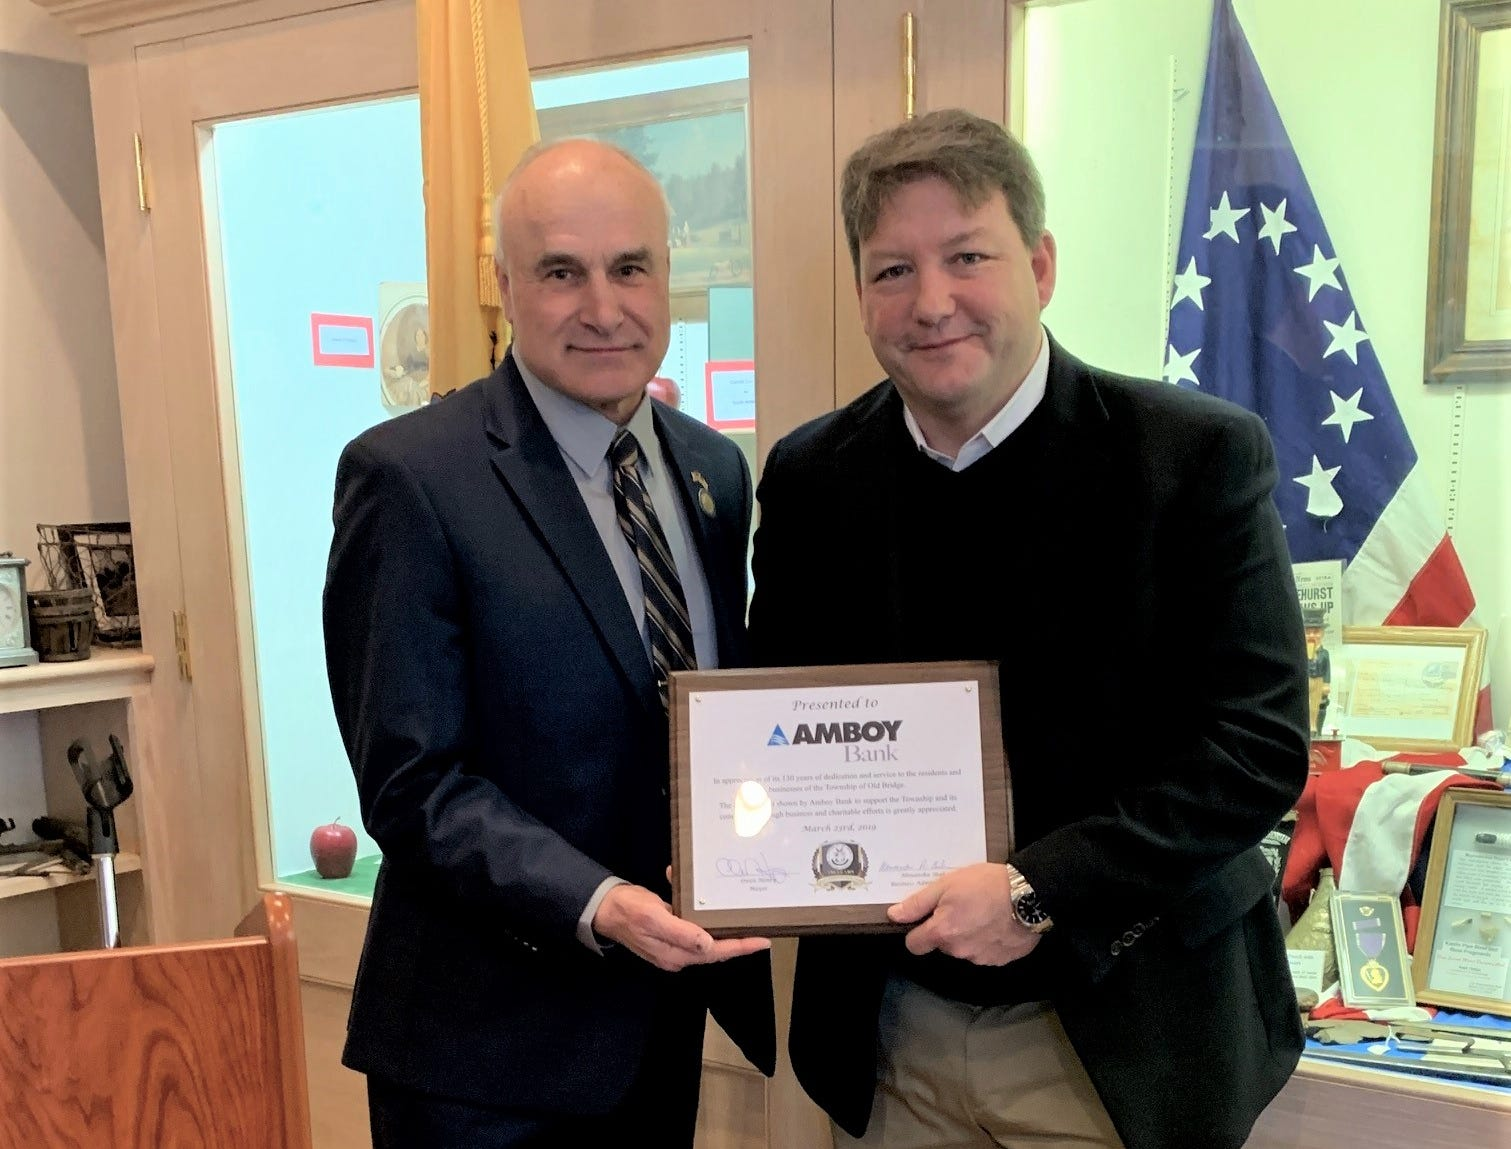 Gregory Scharpf, Amboy Bank president and CEO, is presented a plaque by Old Bridge Mayor, Owen Henry, for the bank's 130 years of service in the community. Mayor Henry hosted an opening ceremony for the township's 150th anniversary, where he presented a mayoral proclamation, and Richard Pucciarelli, vice presidentof the Madison Township-Old Bridge Historical Society, provided a brief history on the Township's history. The event kicked off the yearlong celebration.